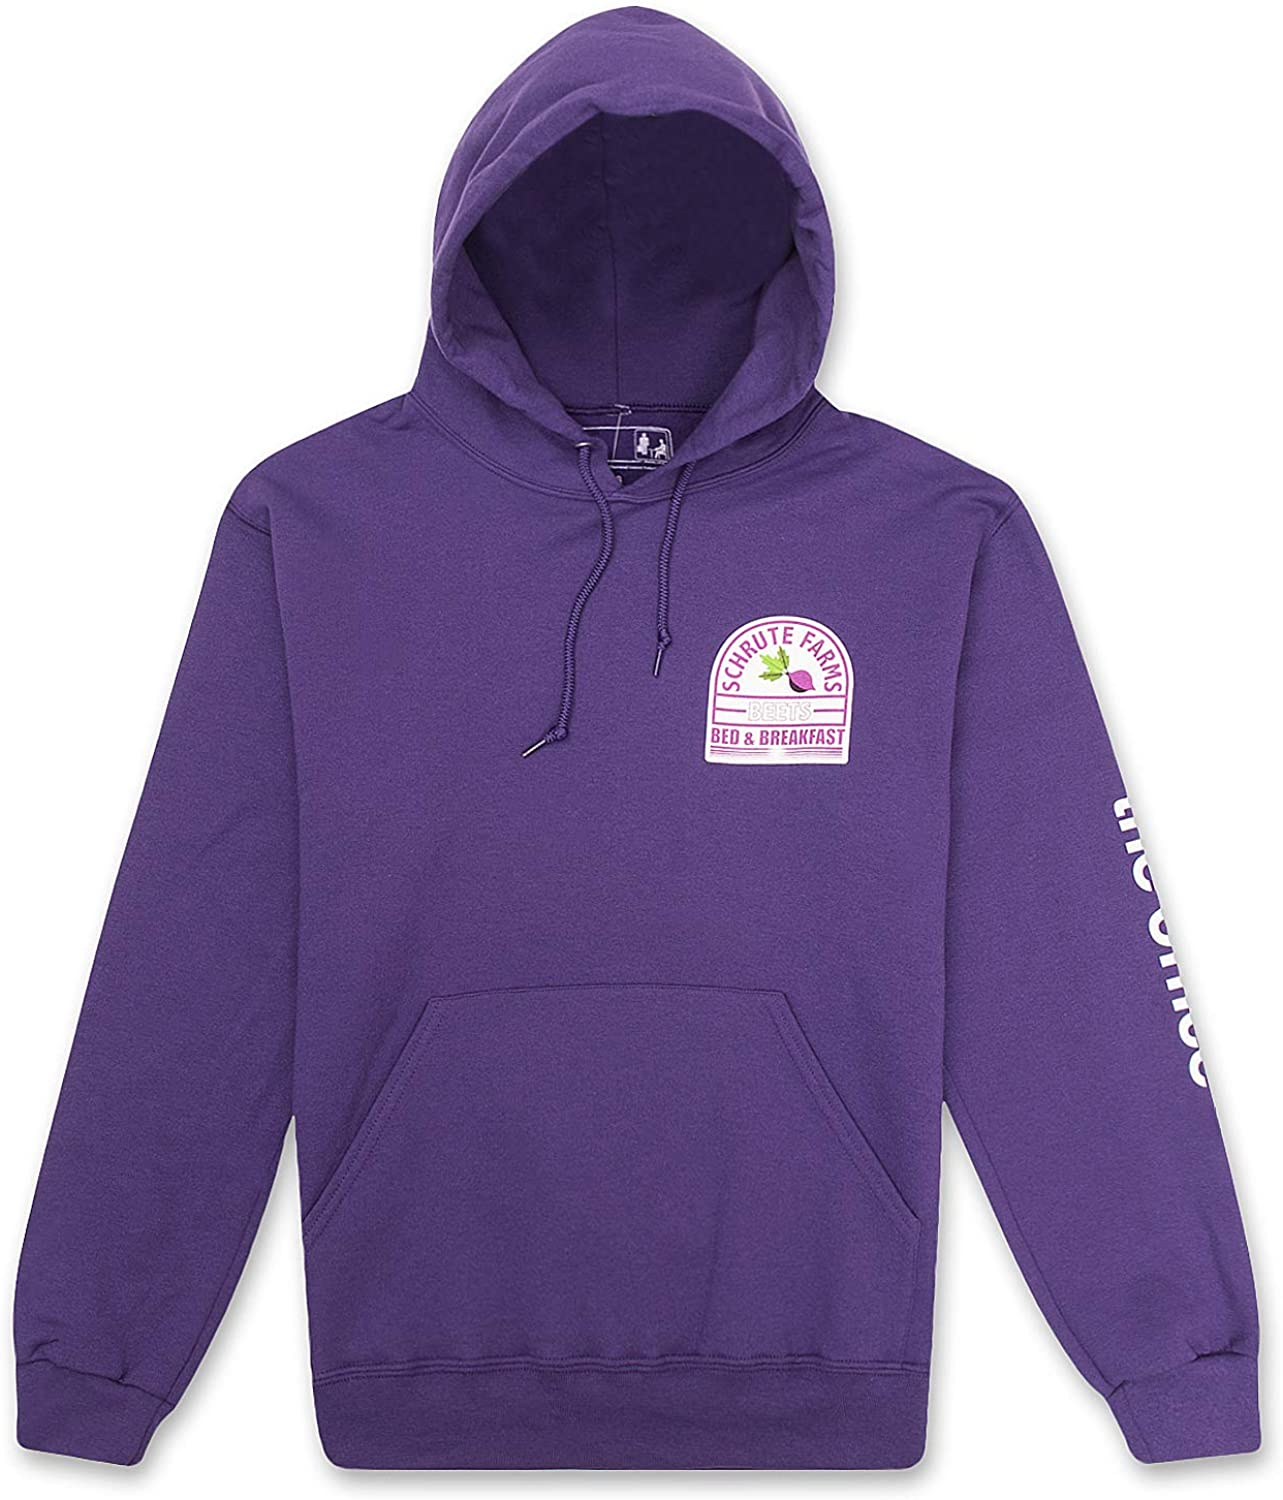 Popular brand in the world The Max 40% OFF Office Hoodies for Men Farms Women Shrute Sweatshirts